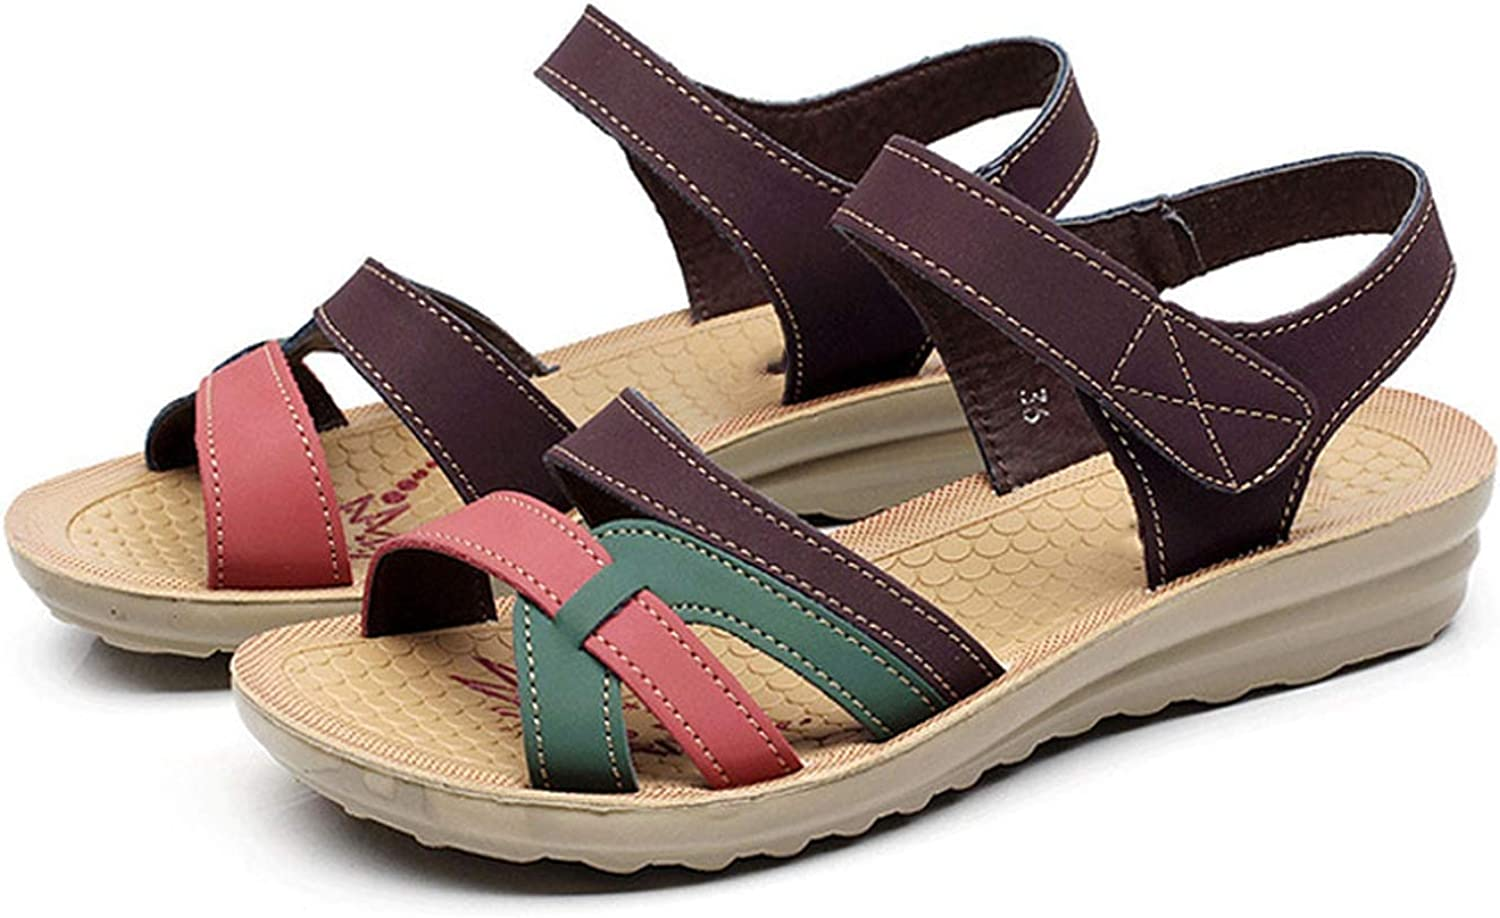 Summer Women Sandals Comfort Flat Sandals Flip Flop Mothers shoes Women Slip-on